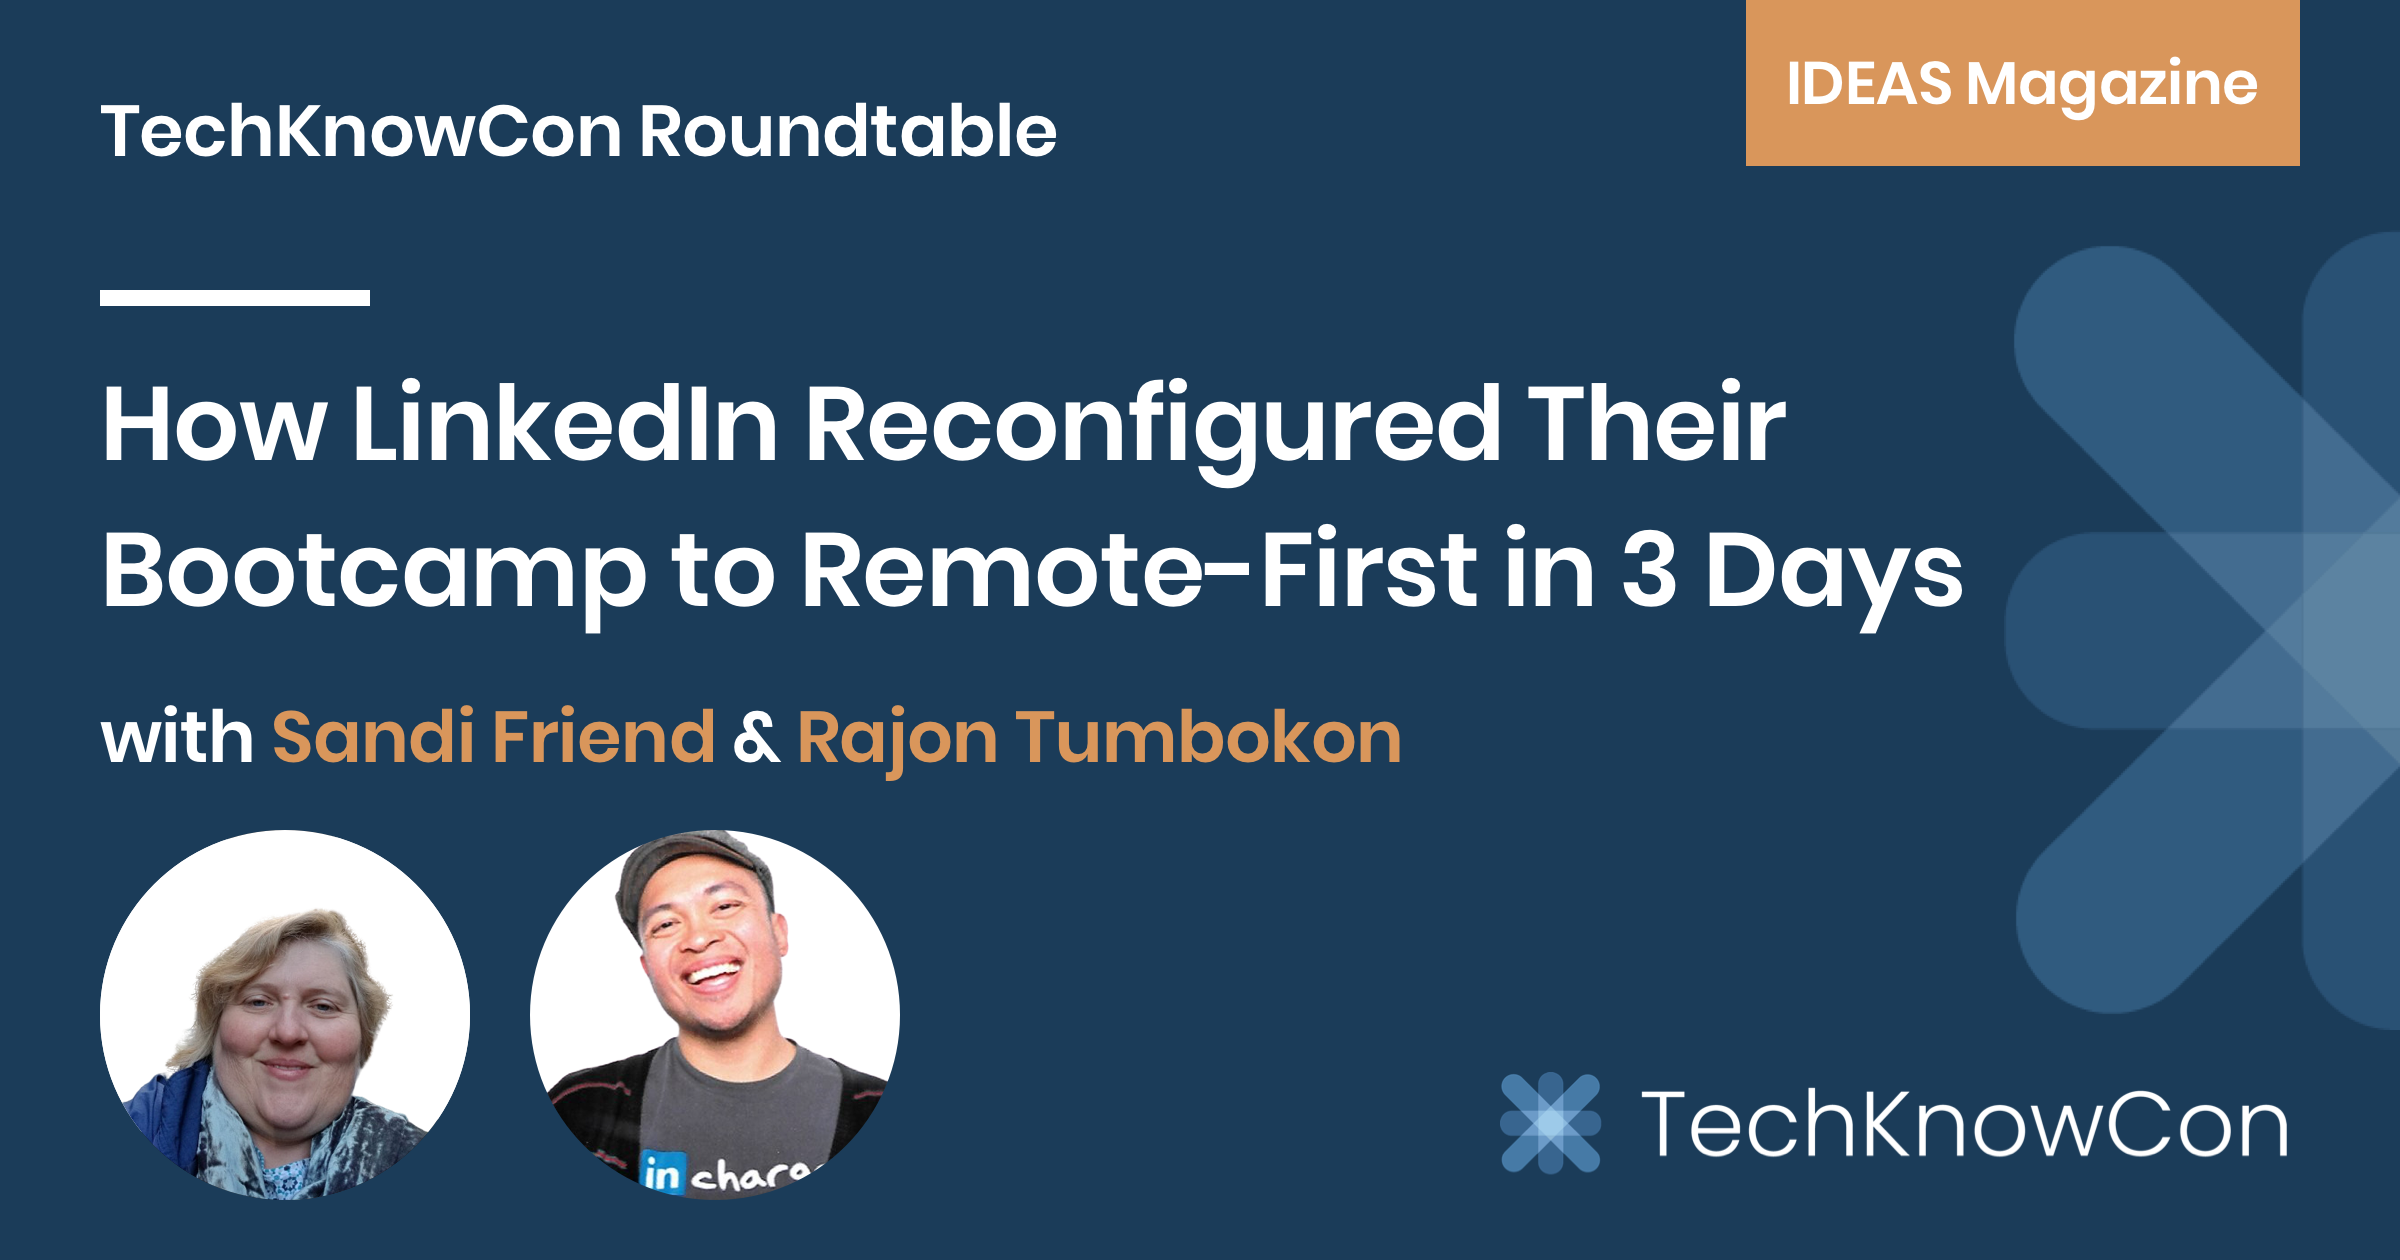 How LinkedIn Reconfigured Their Bootcamp to Remote-First in 3 Days